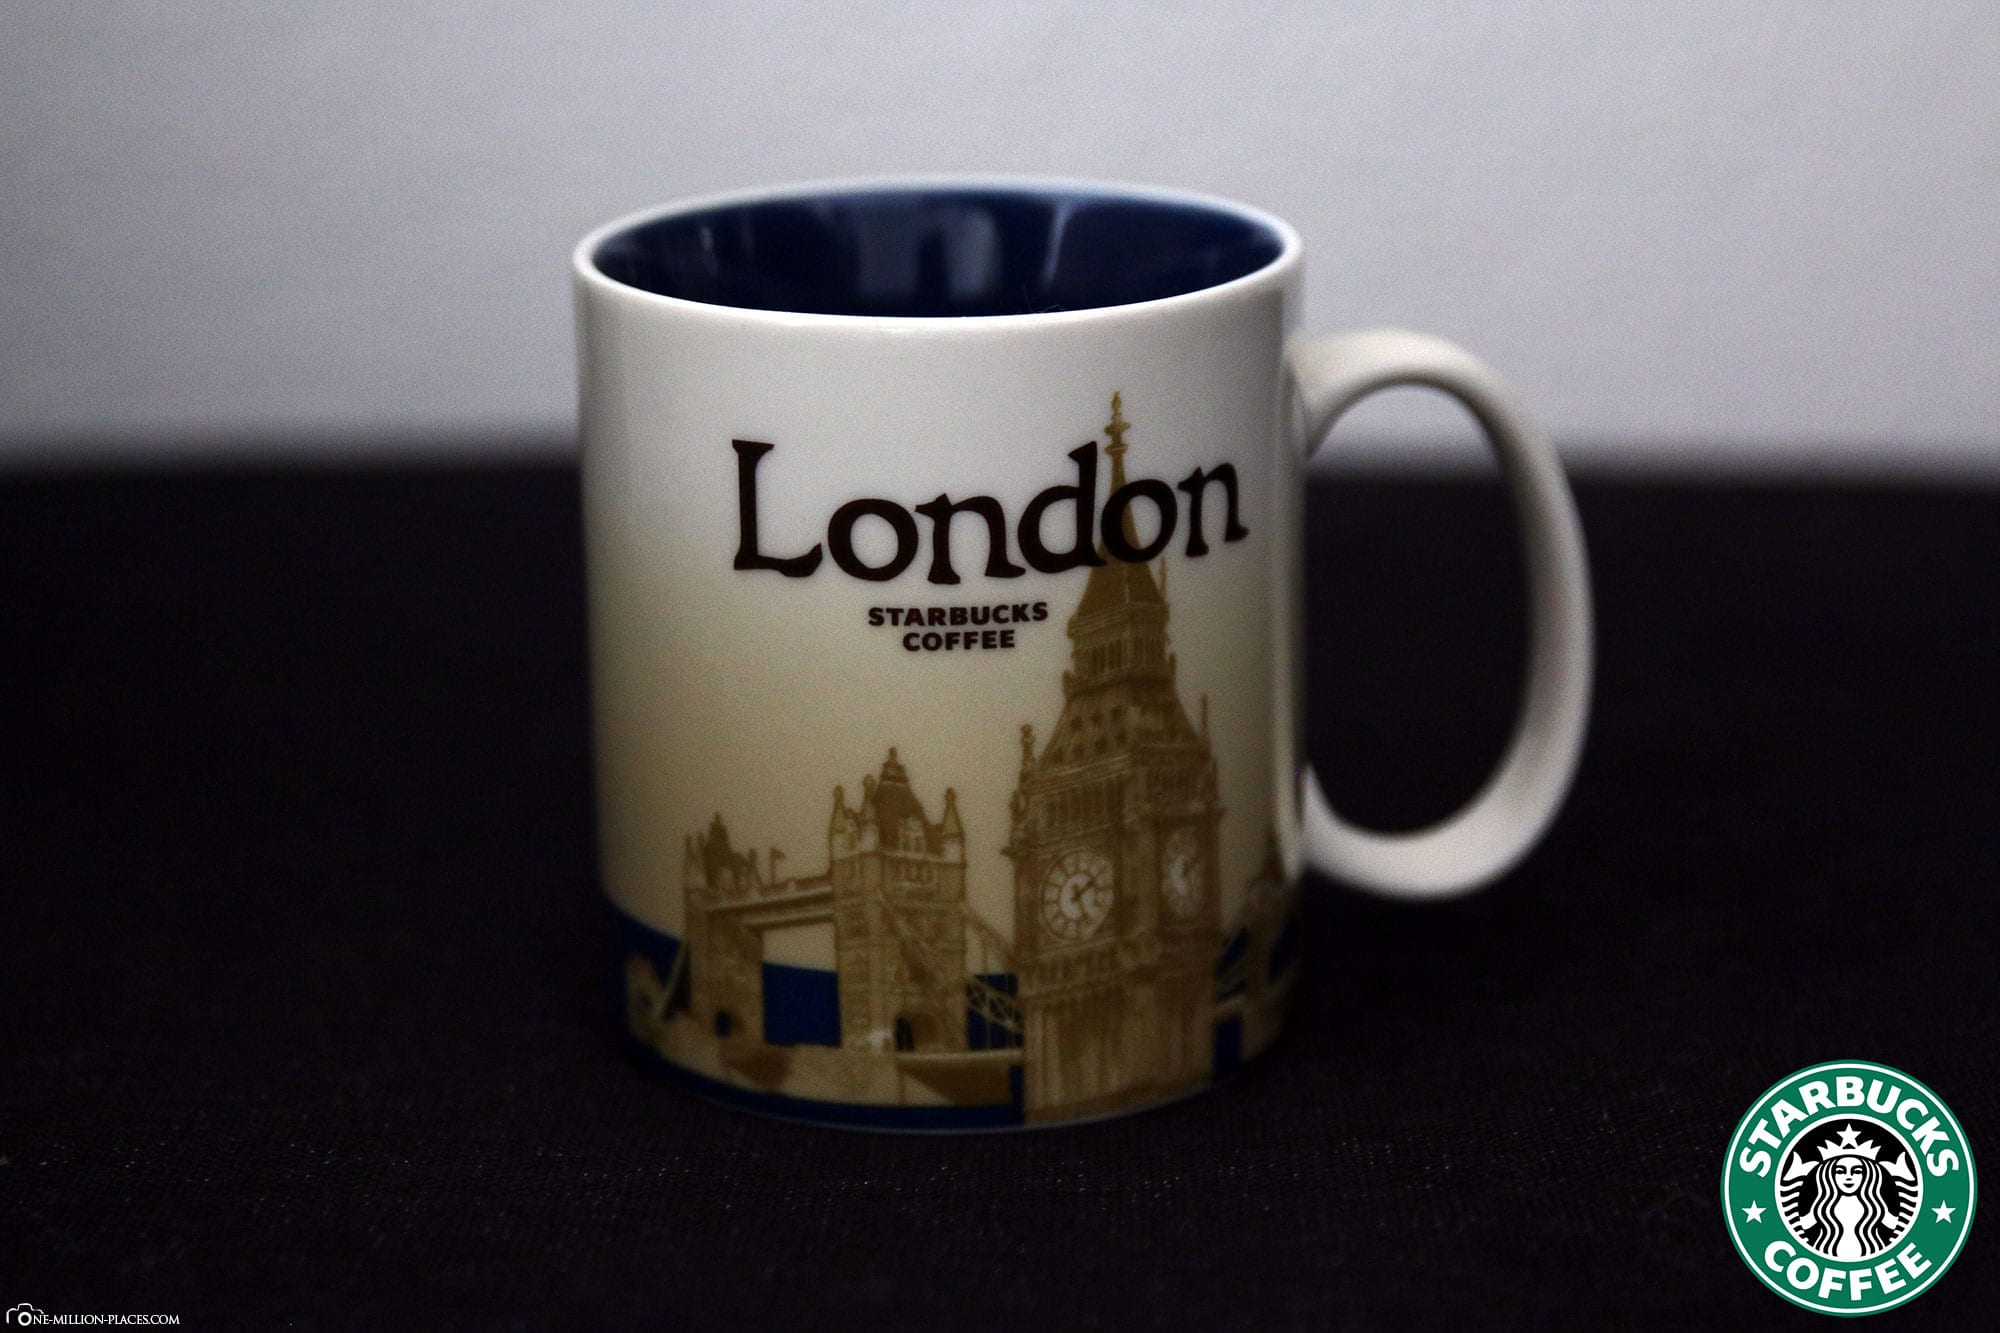 London, Starbucks Cup, Global Icon Series, City Mugs, Collection, United Kingdom, Travelreport